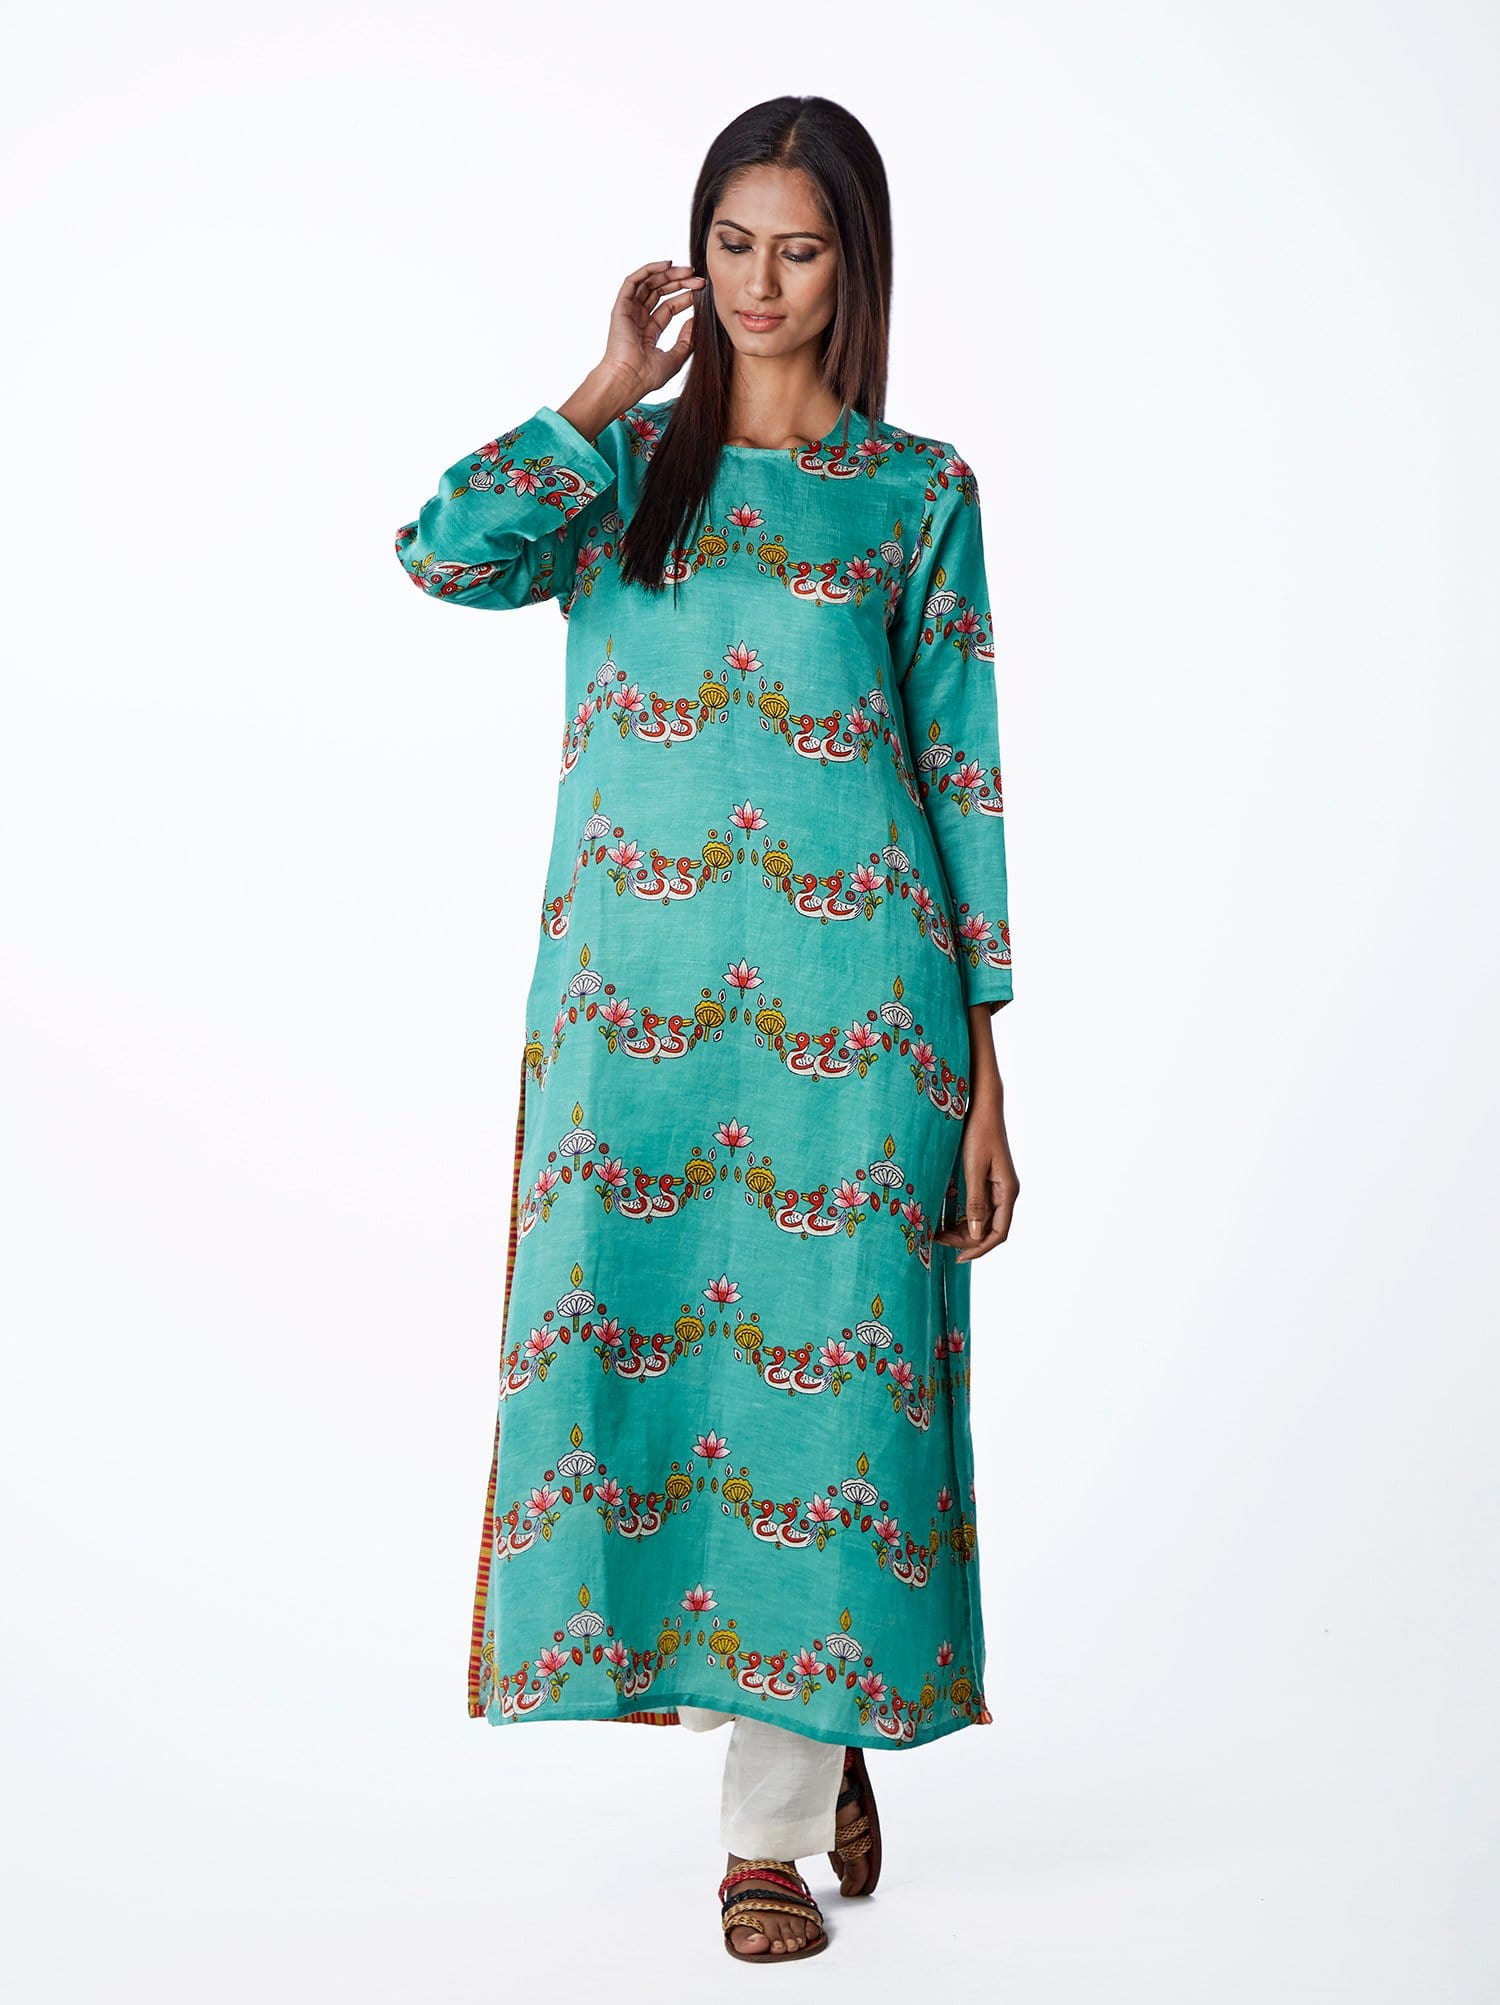 Bundi Mint Scallop Print Kurta